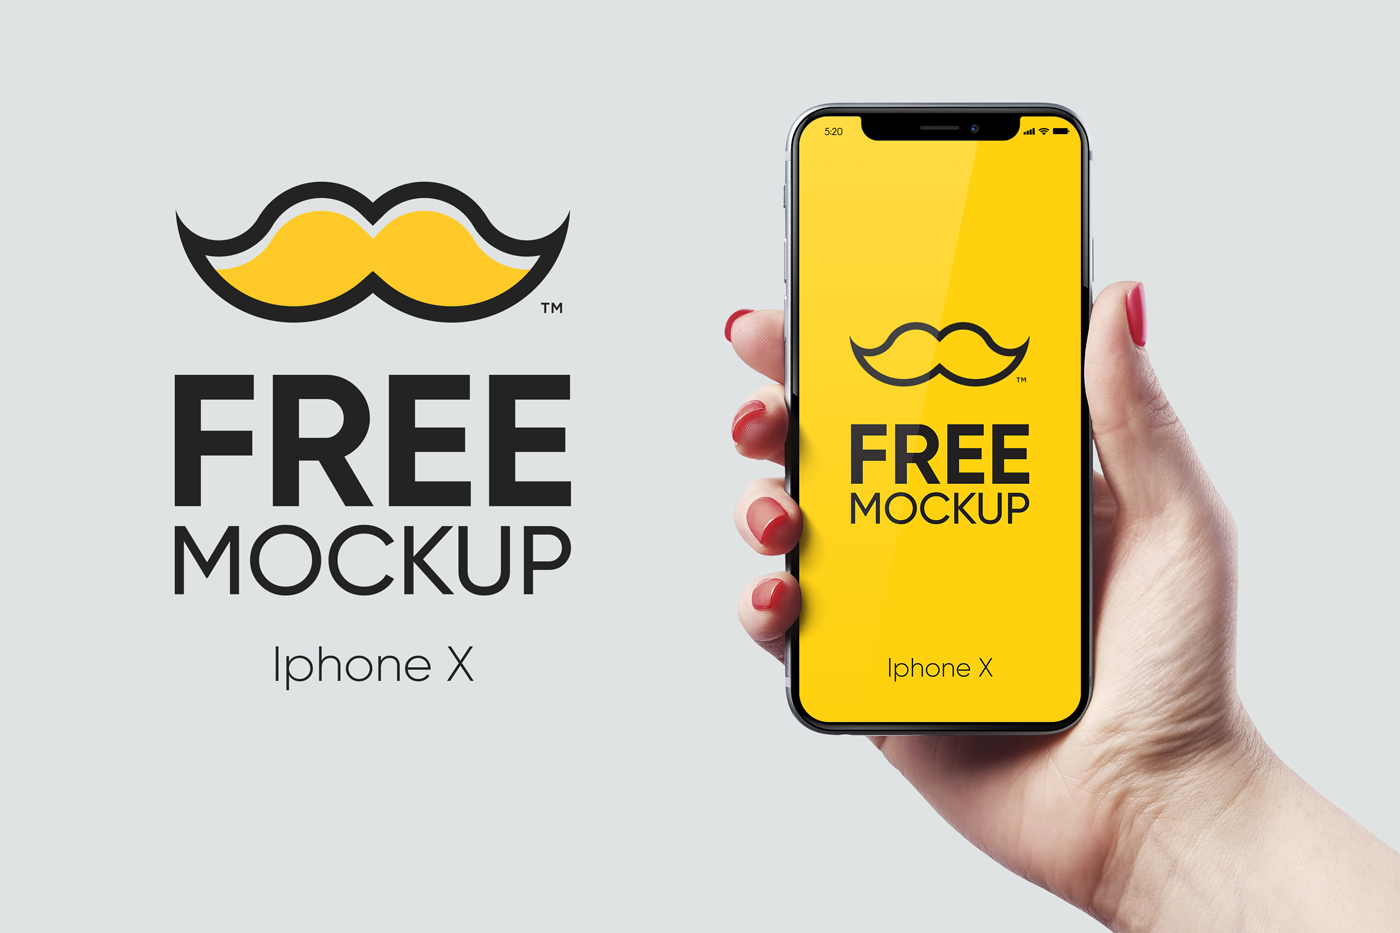 iphone x 1000x1000 - Free Iphone X New Mockup psd